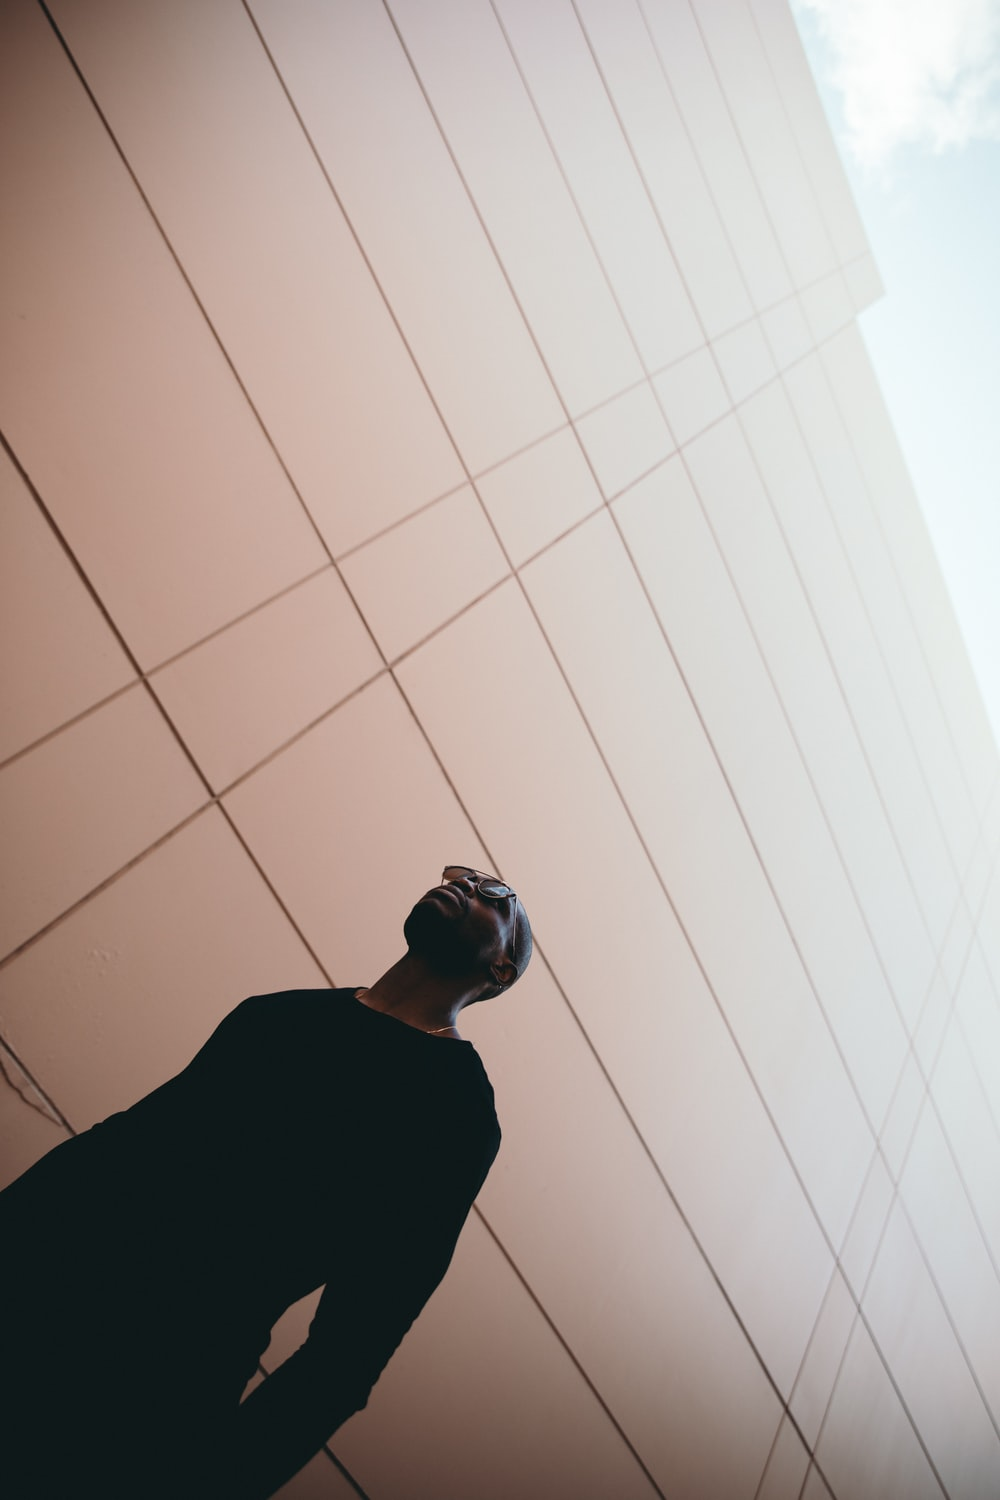 worm's-eye view photography of man standing near beige building